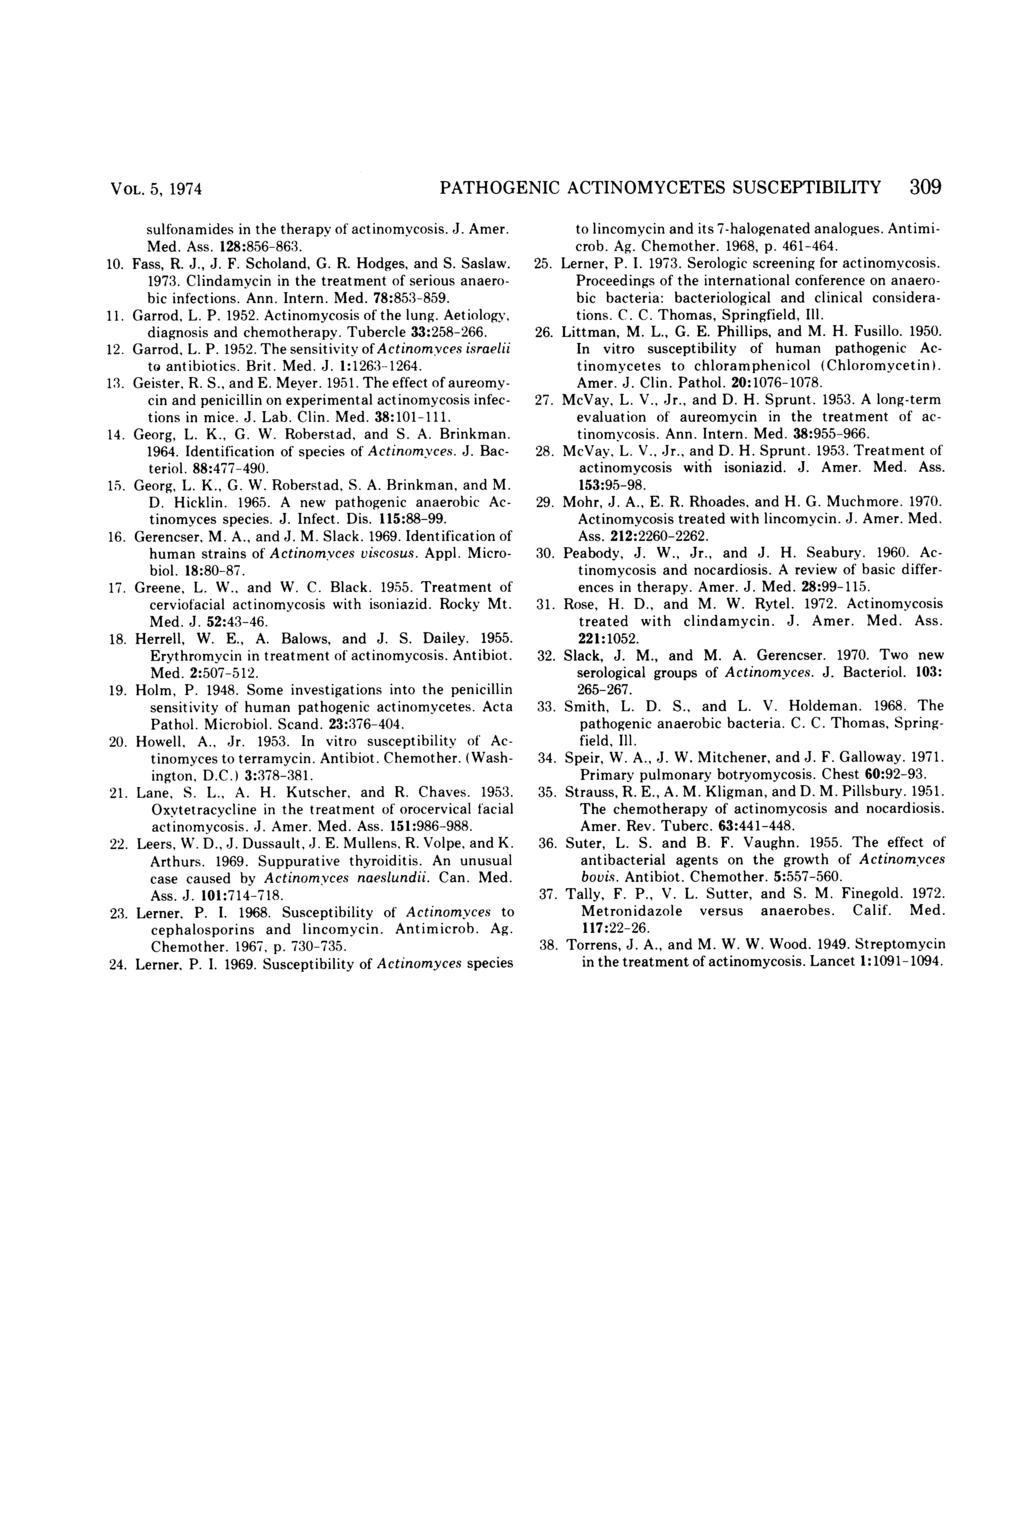 VOL. 5, 1974 PATHOGENIC ACTINOMYCETES SUSCEPTIBILITY 309 sulfonamides in the therapy of actinomycosis. J. Amer. Med. Ass. 128:856-863. 10. Fass, R. J., J. F. Scholand, G. R. Hodges, and S. Saslaw.